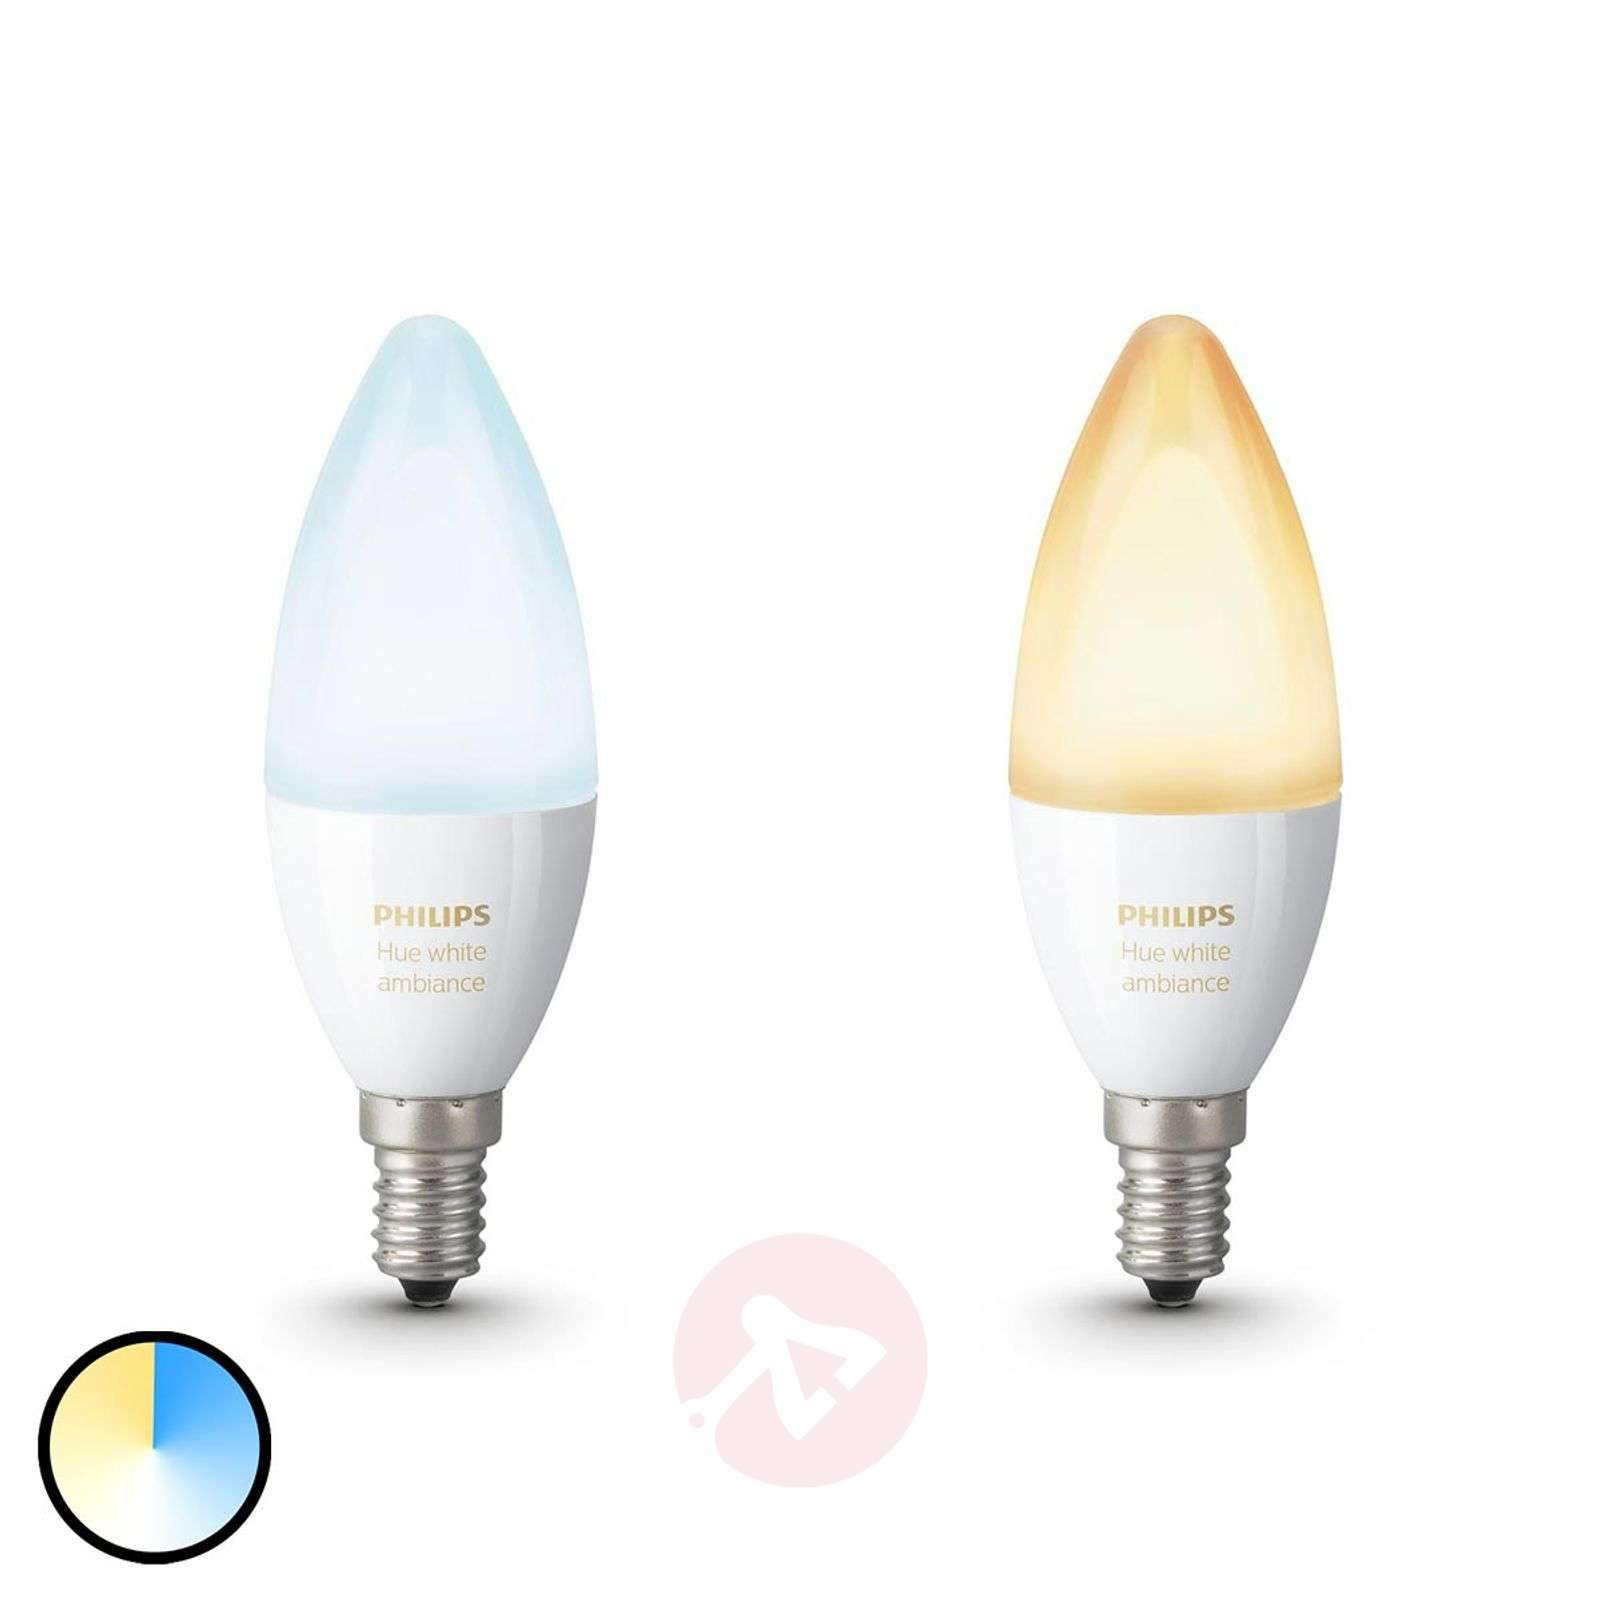 Philips Hue candle bulb White Ambiance 2 x E14-7532034-01